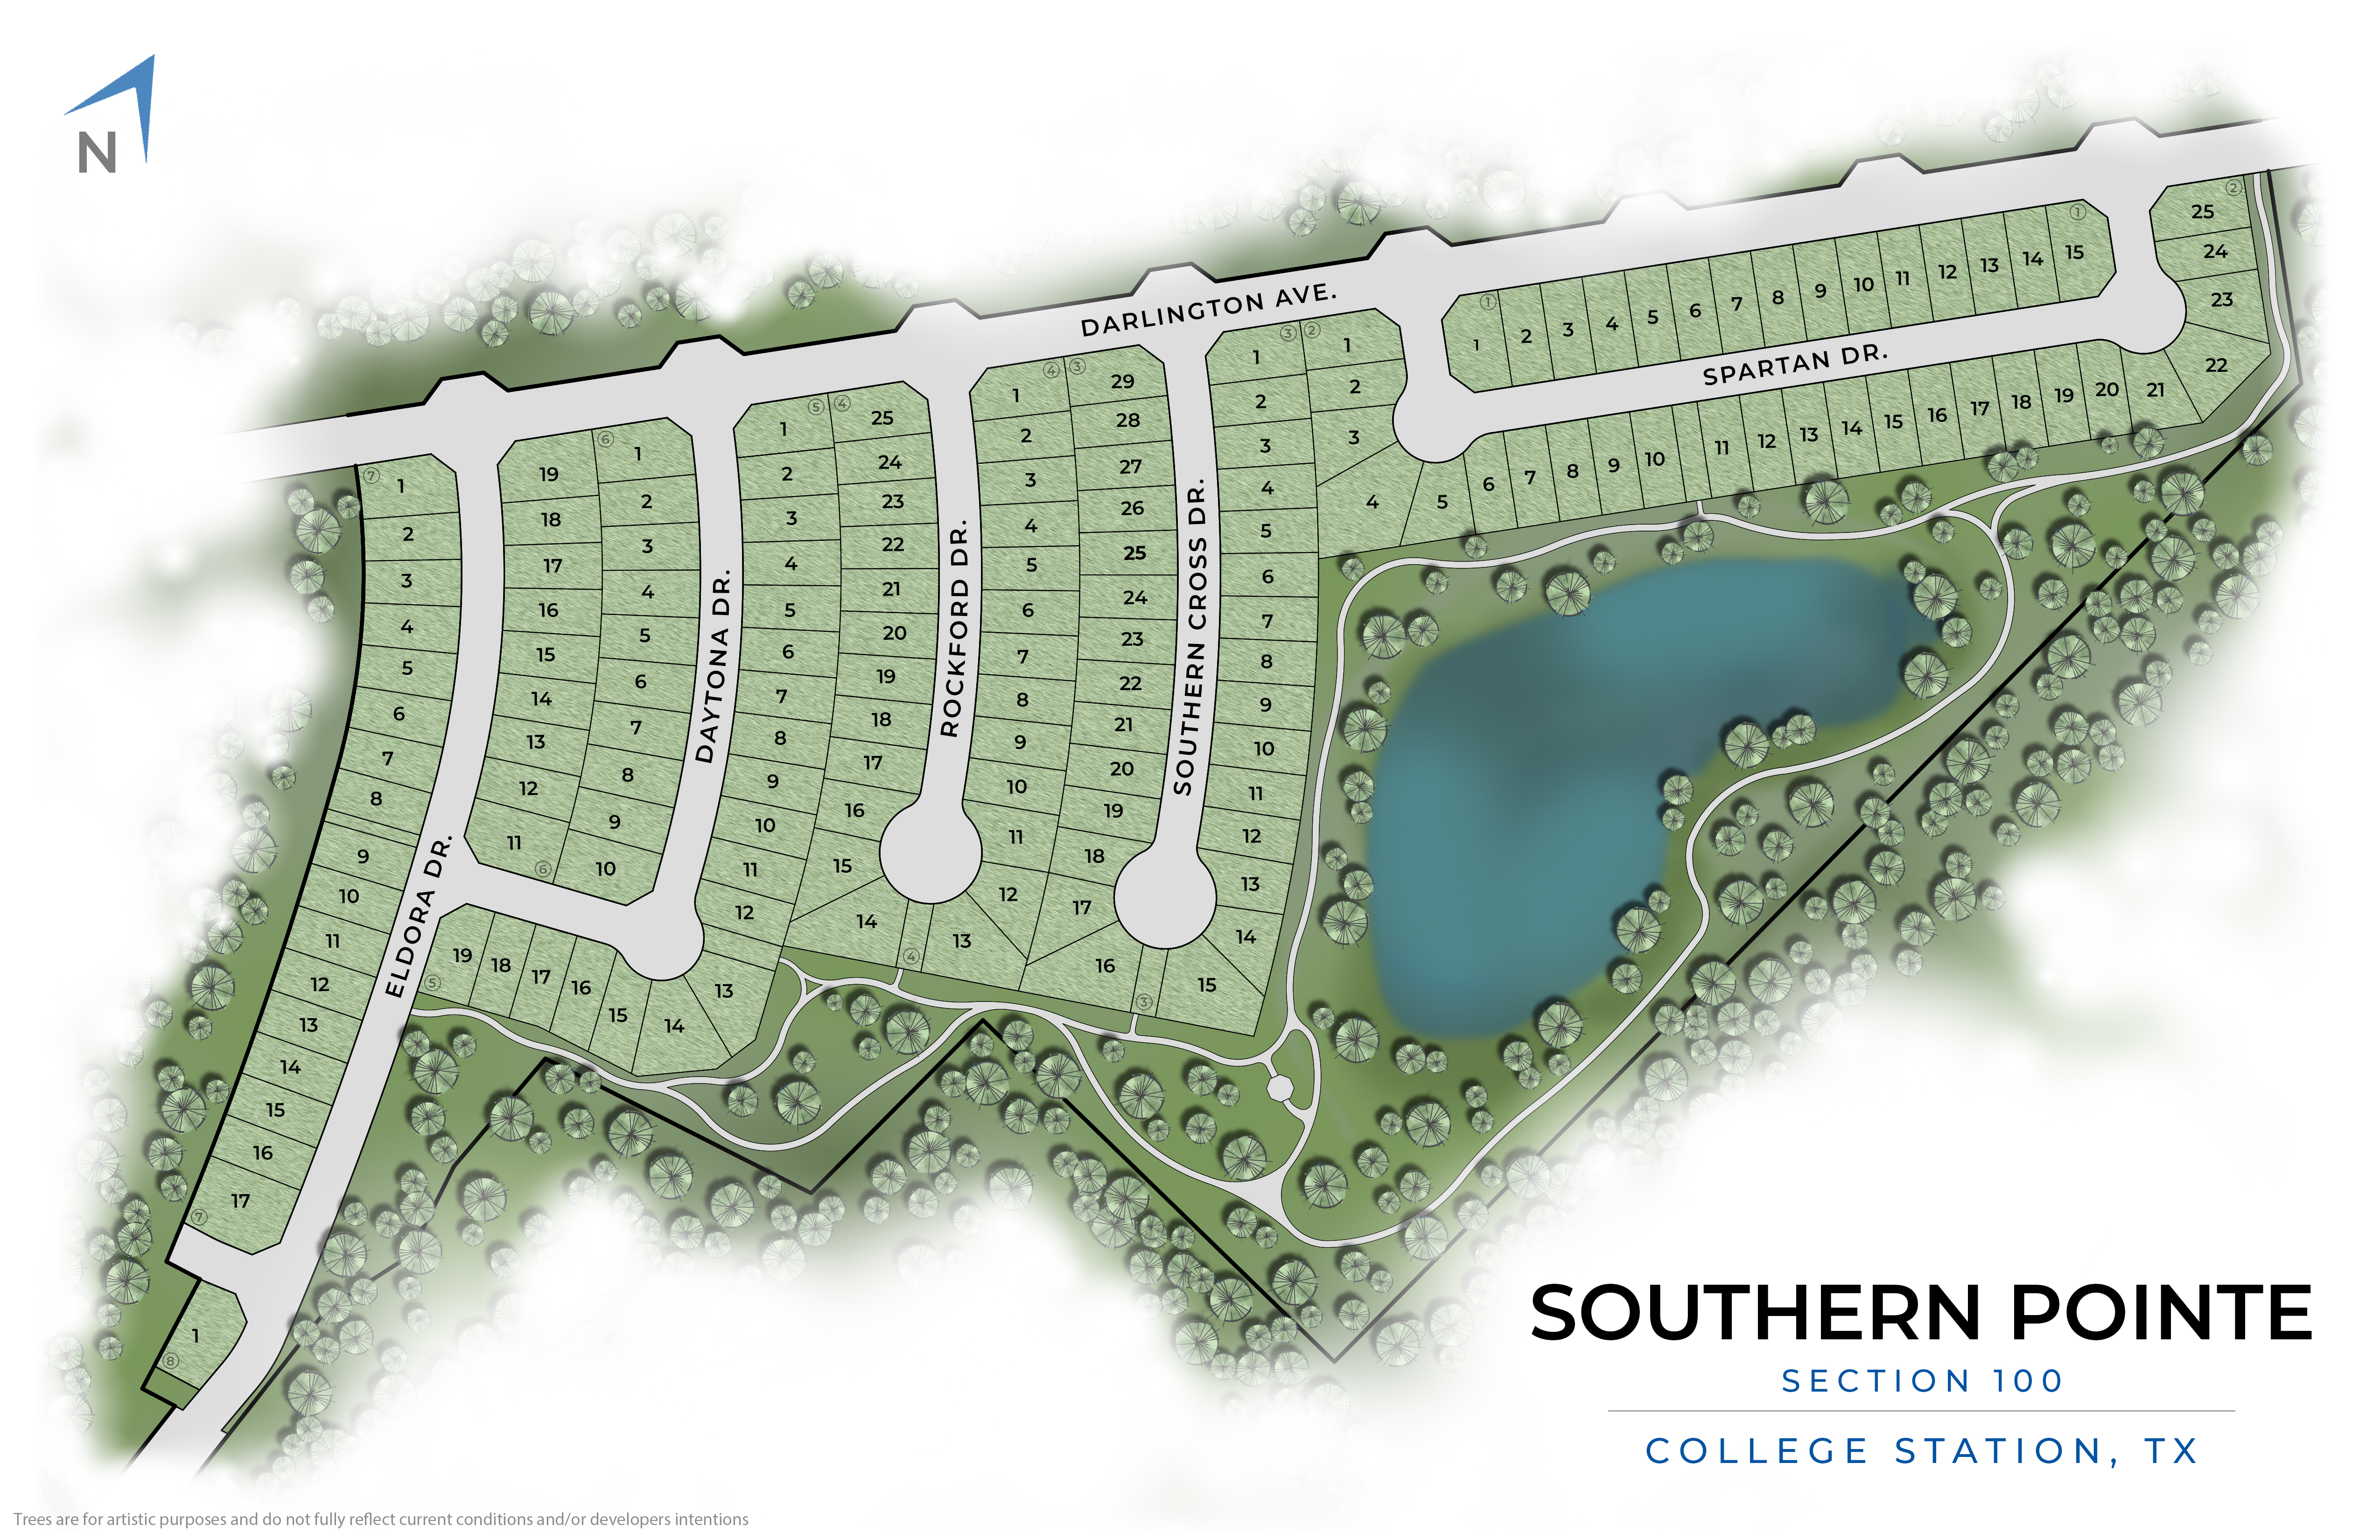 College Station, TX Southern Pointe New Homes from Stylecraft Builders